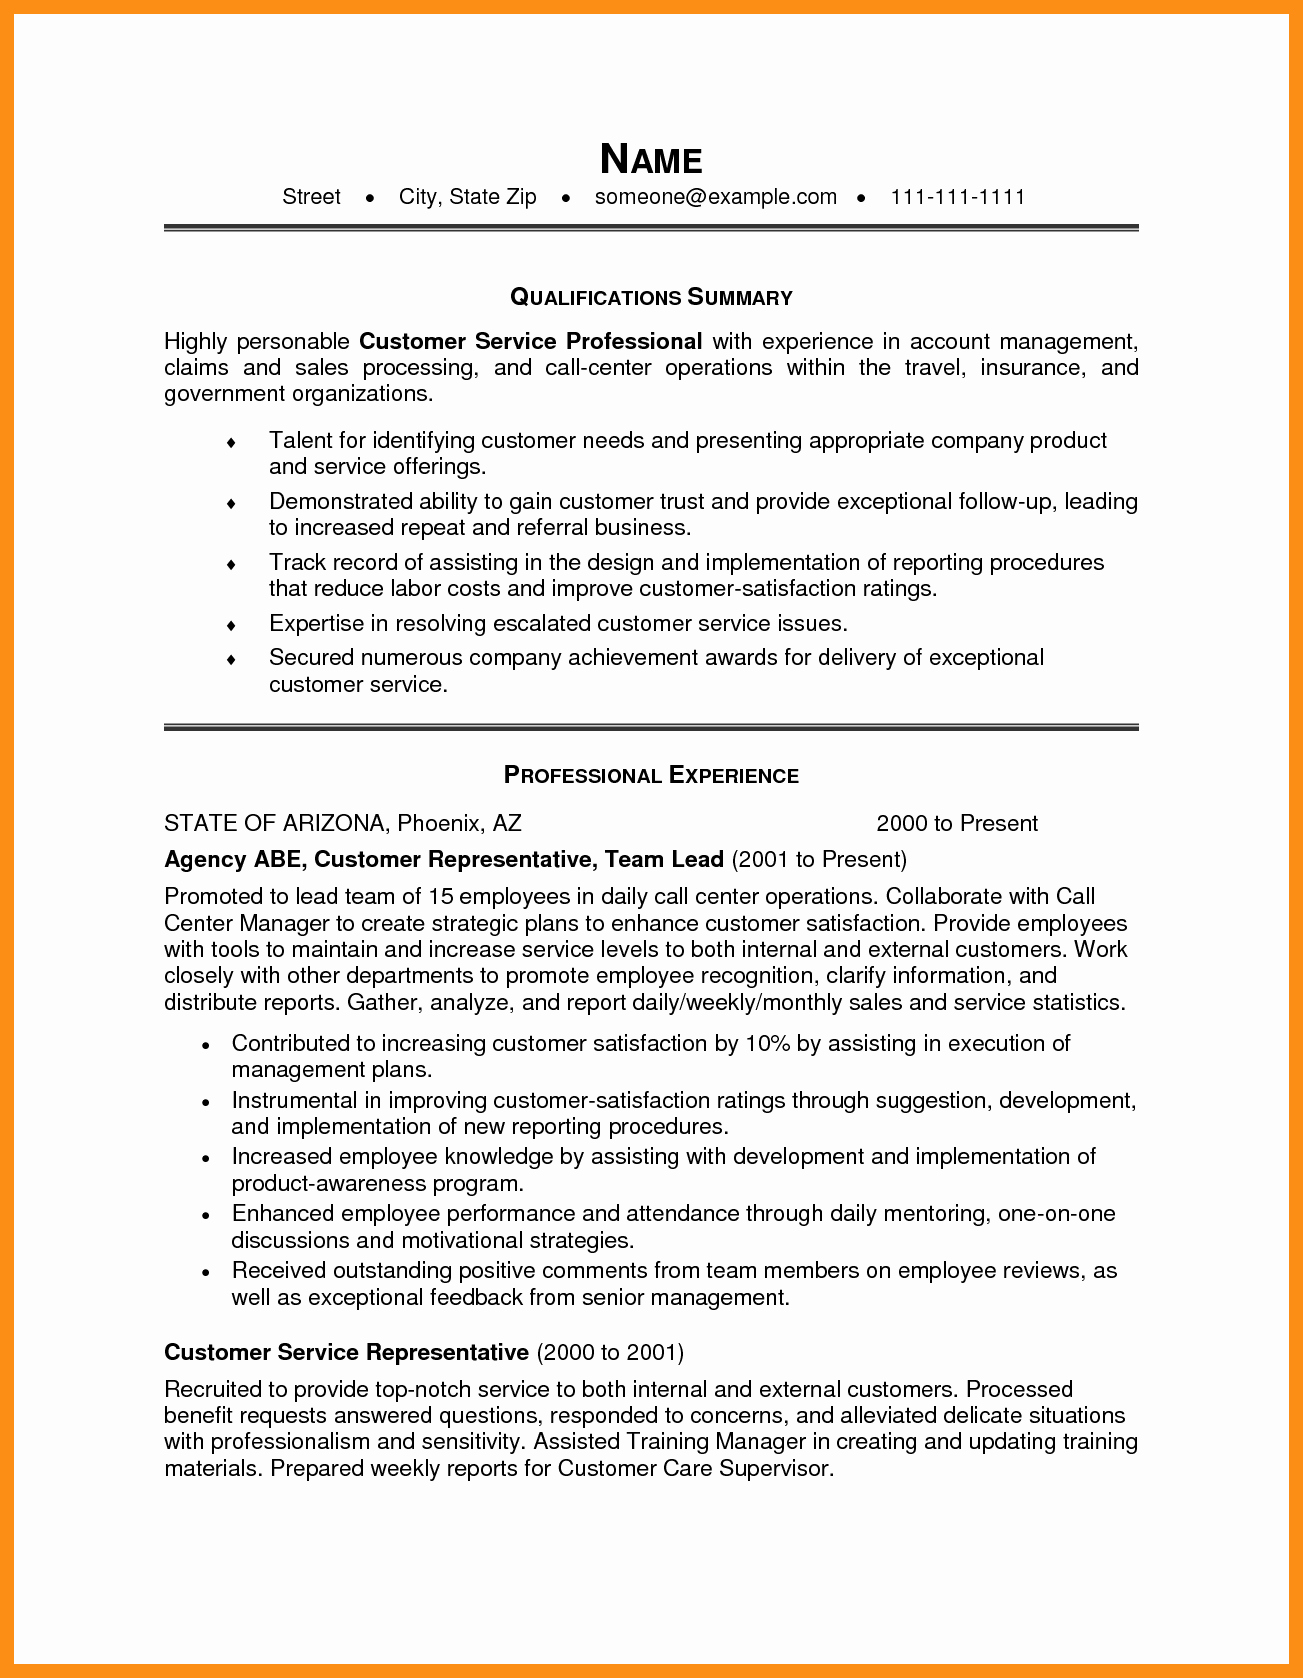 Examples Of Excellent Resumes Beautiful Excellent Resume Examples 2014